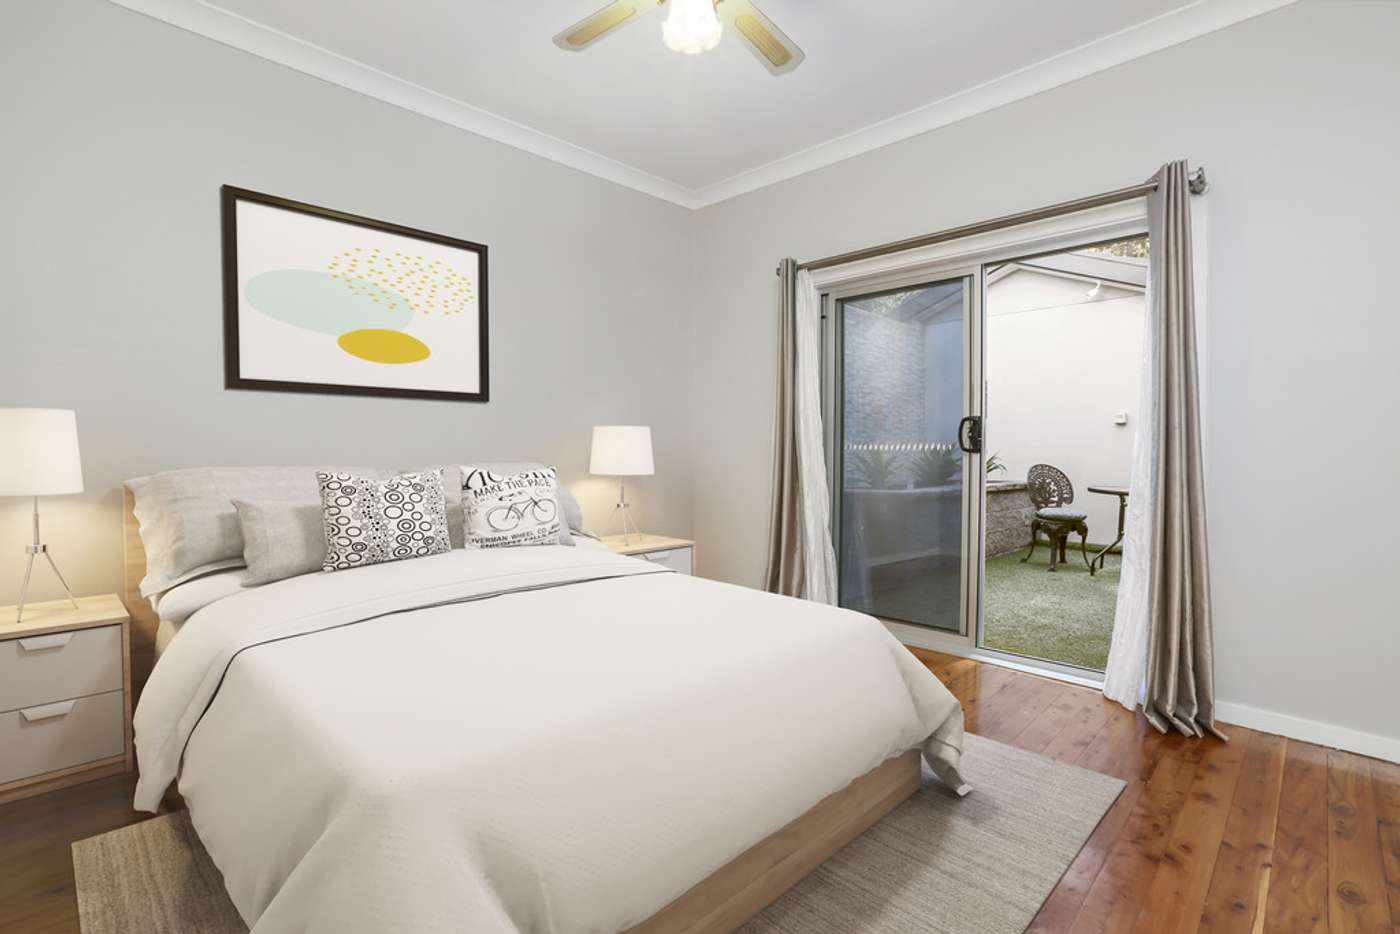 Sixth view of Homely house listing, 58 Ocean Street, Mount Saint Thomas NSW 2500